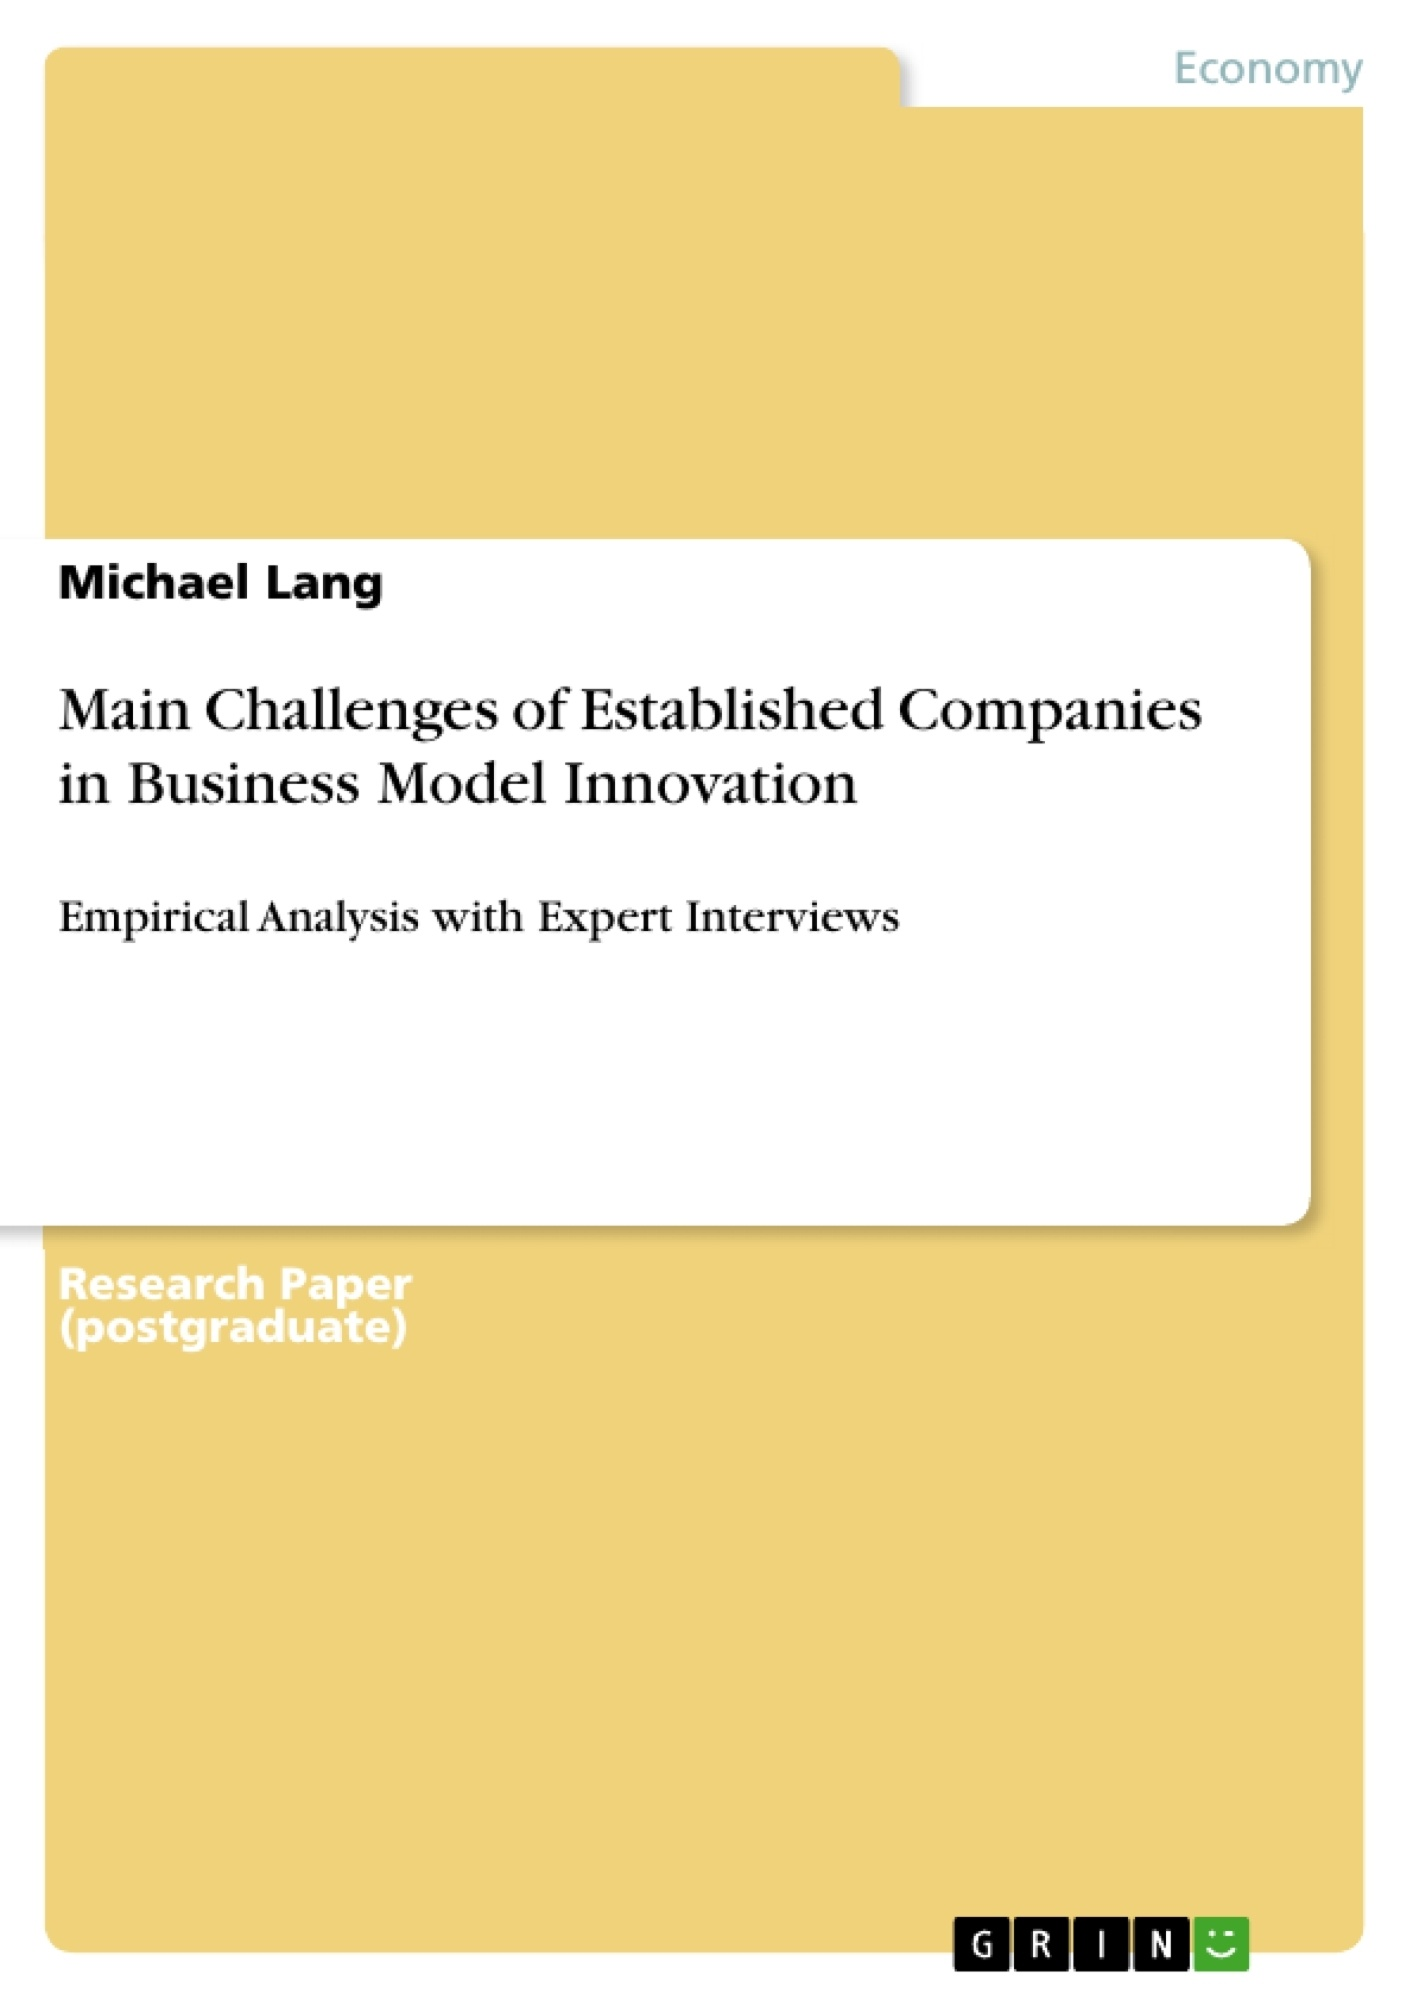 Title: Main Challenges of Established Companies in Business Model Innovation